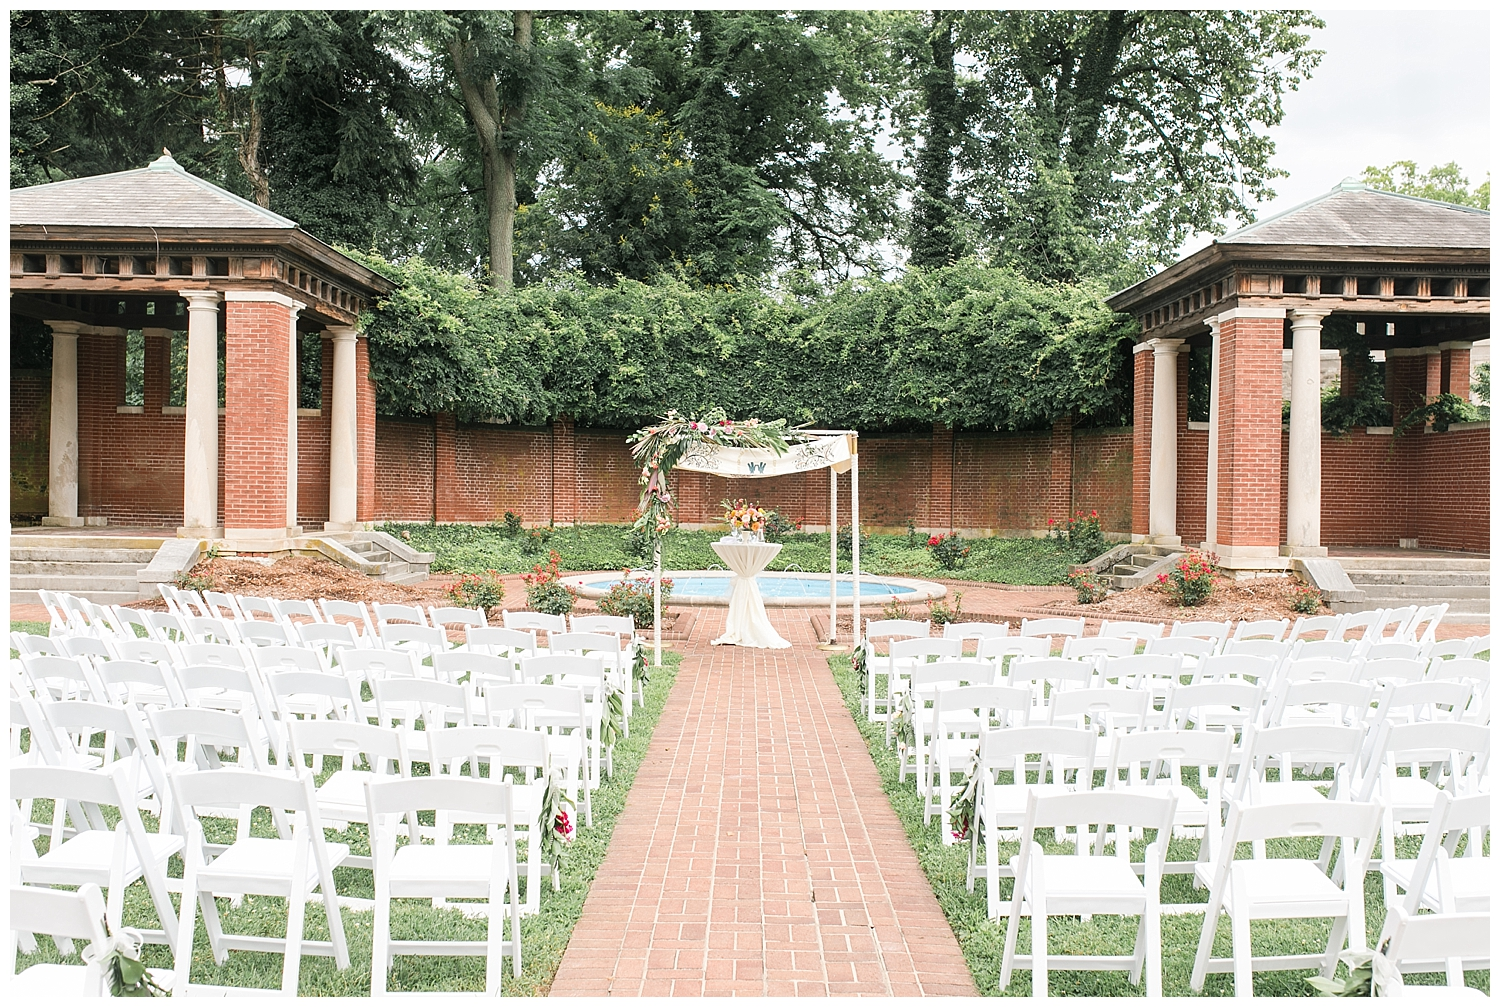 The bride and groom in a Jewish ceremony typically recite their vows under the chuppah. The chuppah typically consists of four corners and roof to symbolize the home they are building together.